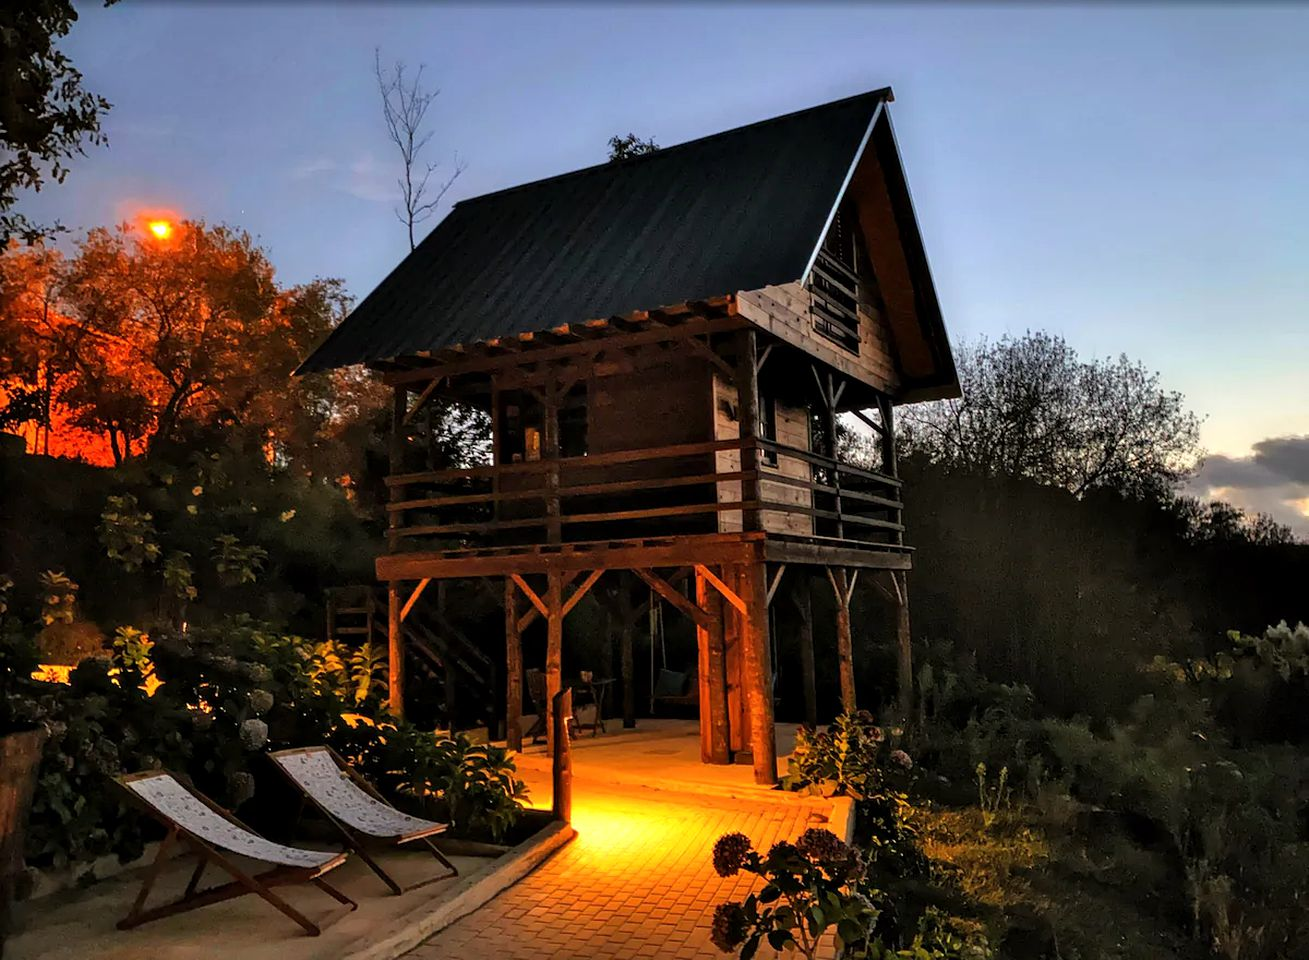 Tree house rental for glamping in Portugal